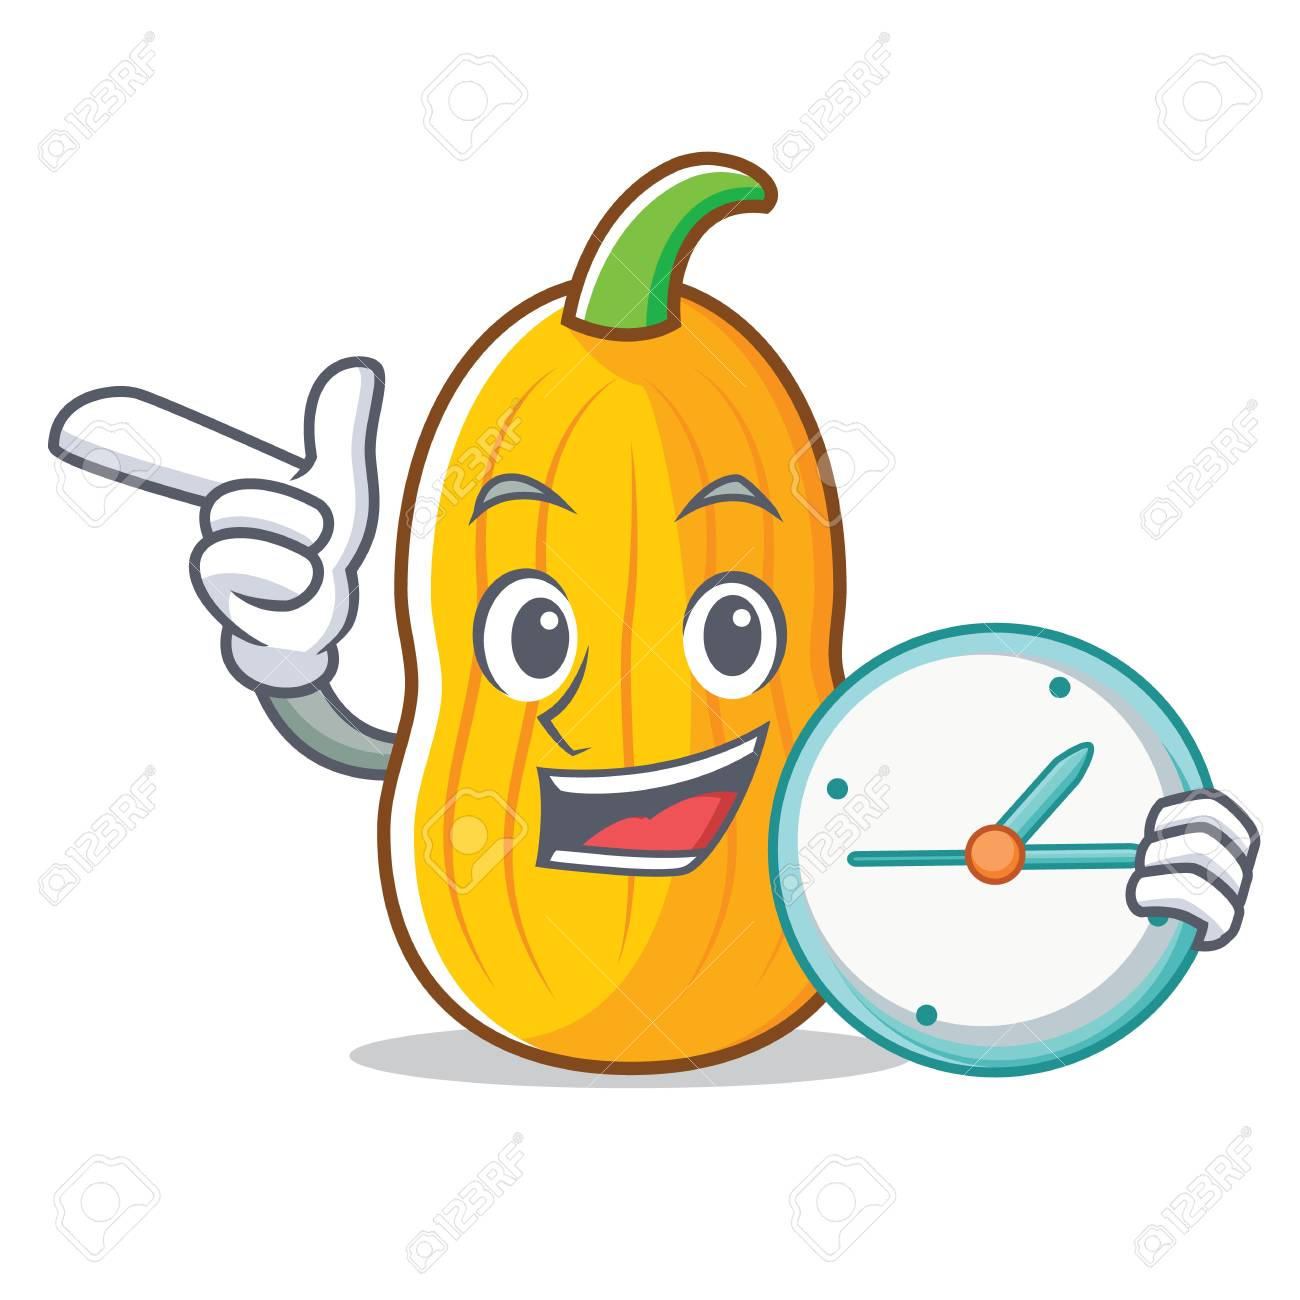 With clock butternut squash character cartoon vector illustration - 94892411